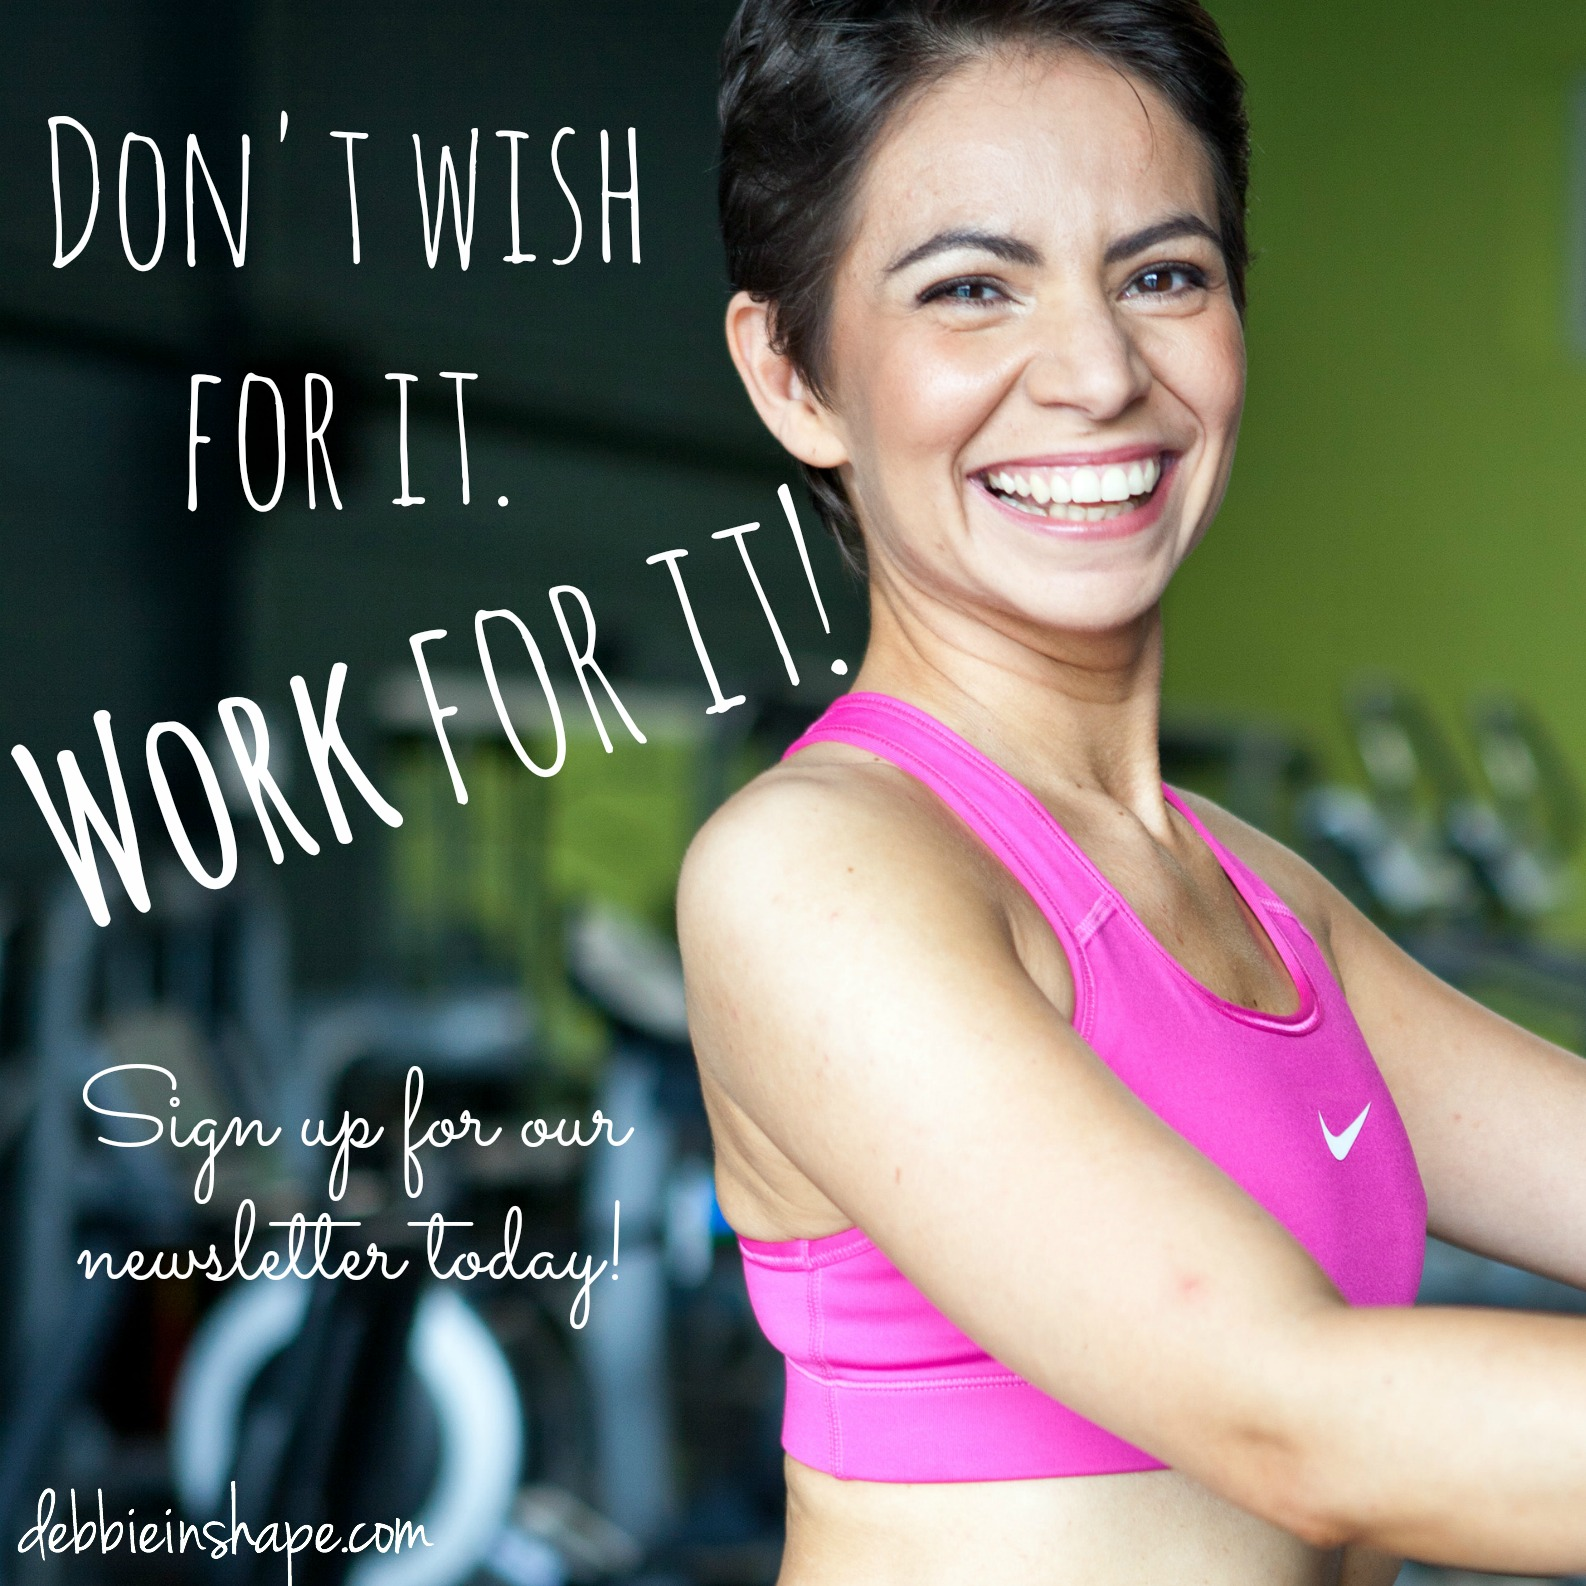 """Don't wish for it. Work for it!"""